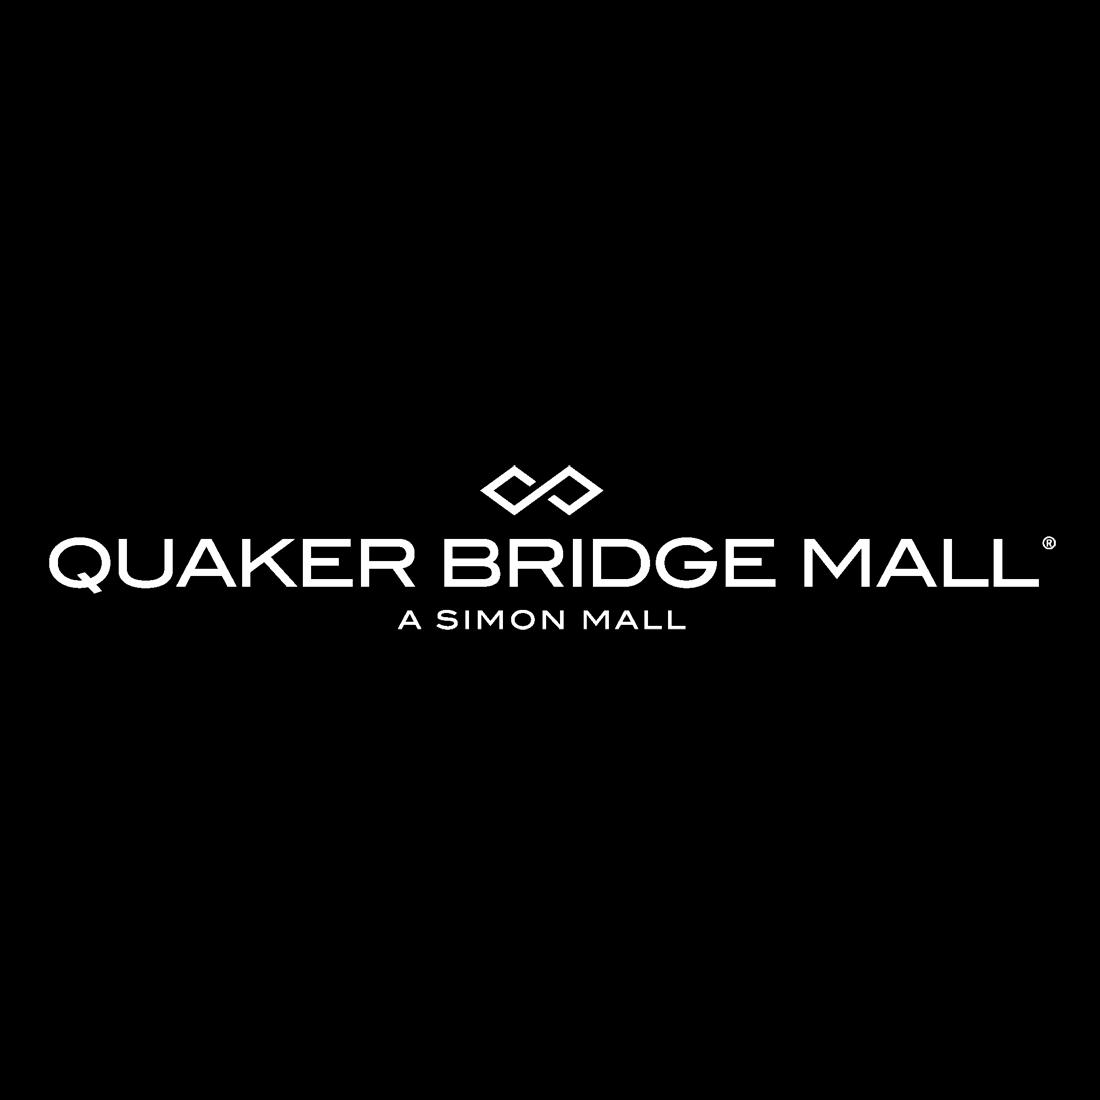 Quaker Bridge Mall 3320 Brunswick Pike Lawrenceville, NJ ... on center mall map, westshore plaza mall map, six flags great adventure map, bellevue factoria mall map, mercer mall map, palisades center map, potomac mills mall map, simon mall map, kenwood mall map, livingston mall map, lakeline mall map, westfield valley fair mall map, international mall store map, bella terra mall map, galleria mall map, steeplegate mall map, sesame place map, deptford mall map, stonebriar centre mall map,